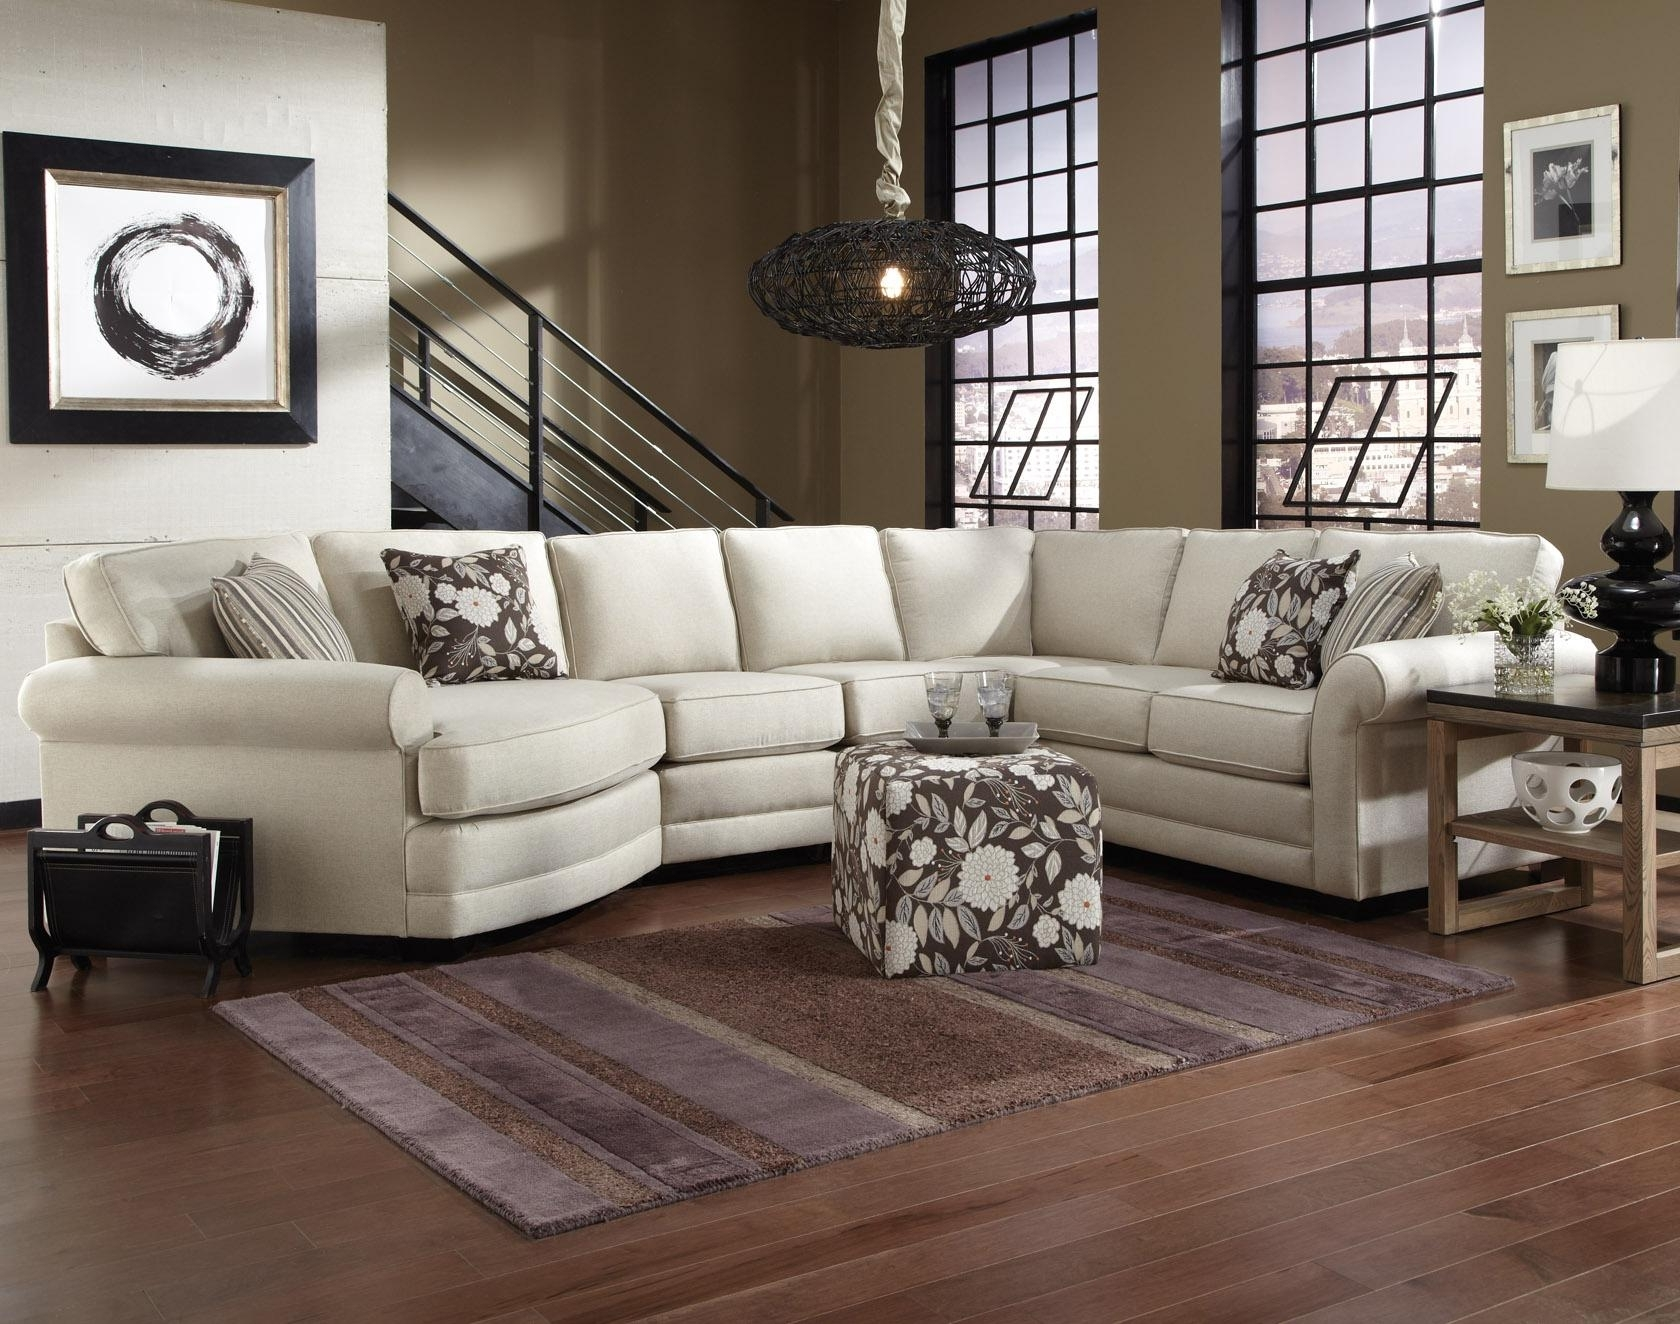 Little Rock Ar Sectional Sofas Intended For Most Current England Brantley 5 Seat Sectional Sofa With Cuddler – Ahfa – Sofa (View 15 of 20)